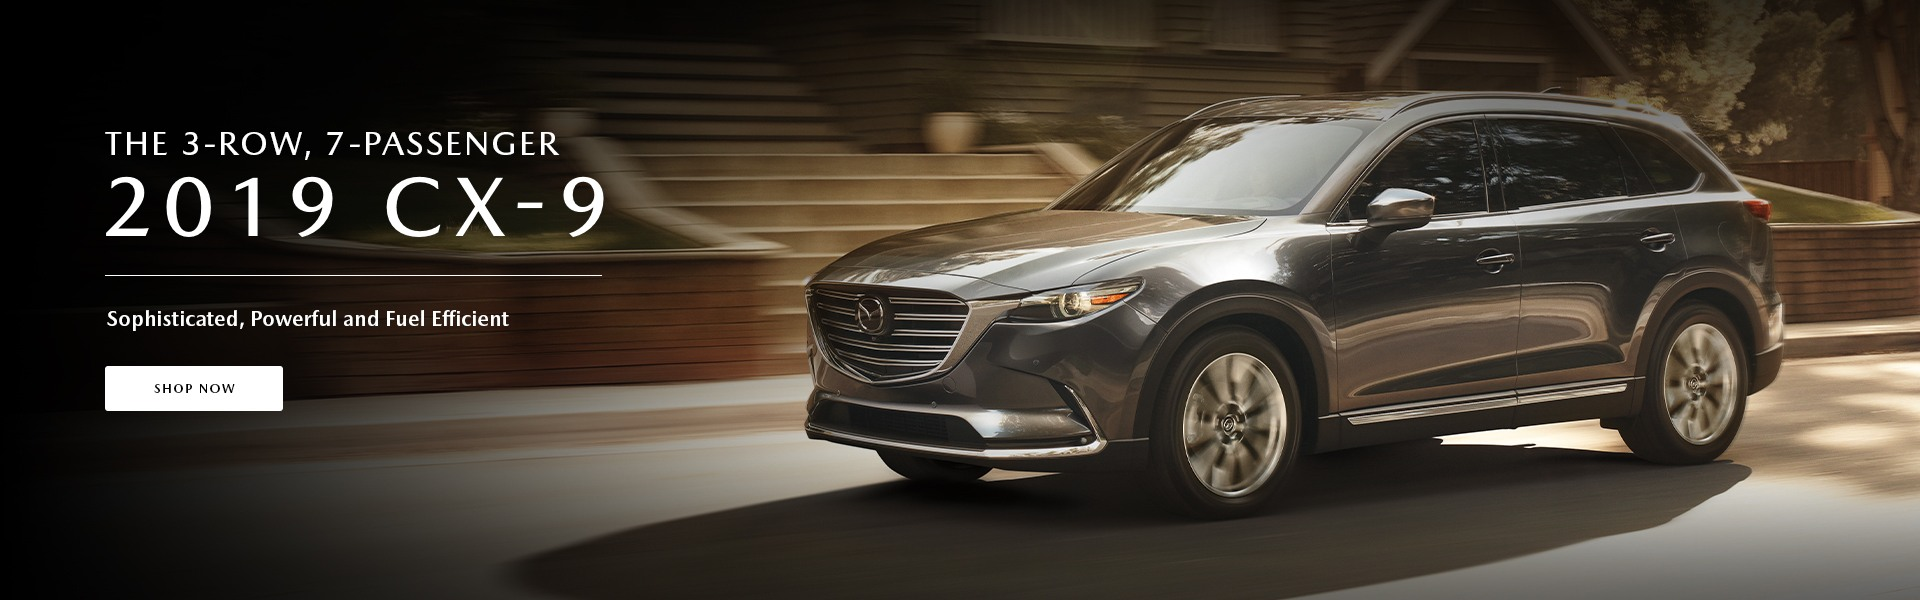 The 3-row, 7-passenger 2019 CX-9.  Sophisticated, Powerful and Fuel Efficient